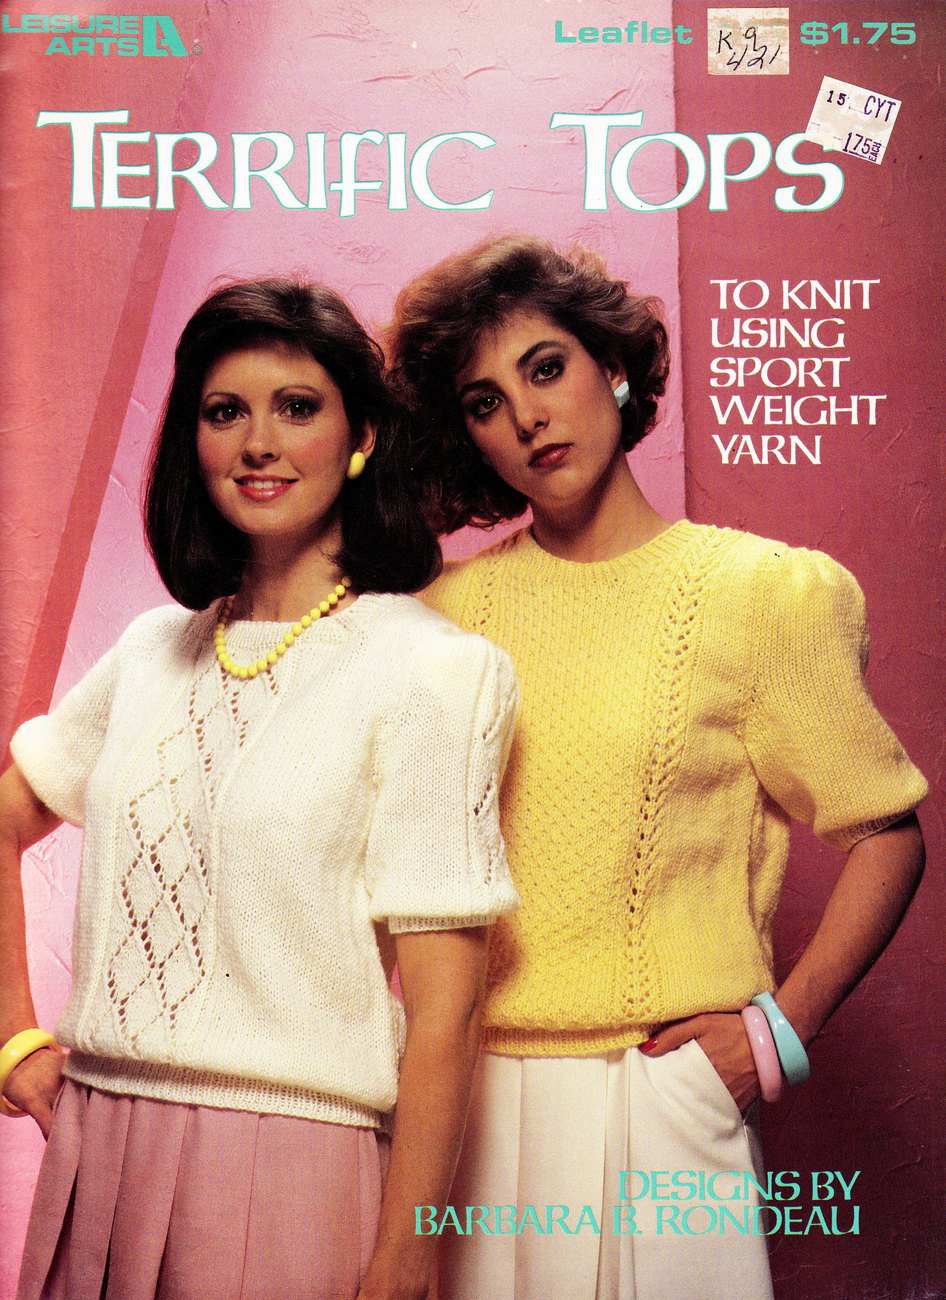 TERRIFIC TOPS TO KNIT WITH SPORTS YARN  LEISURE ARTS 421